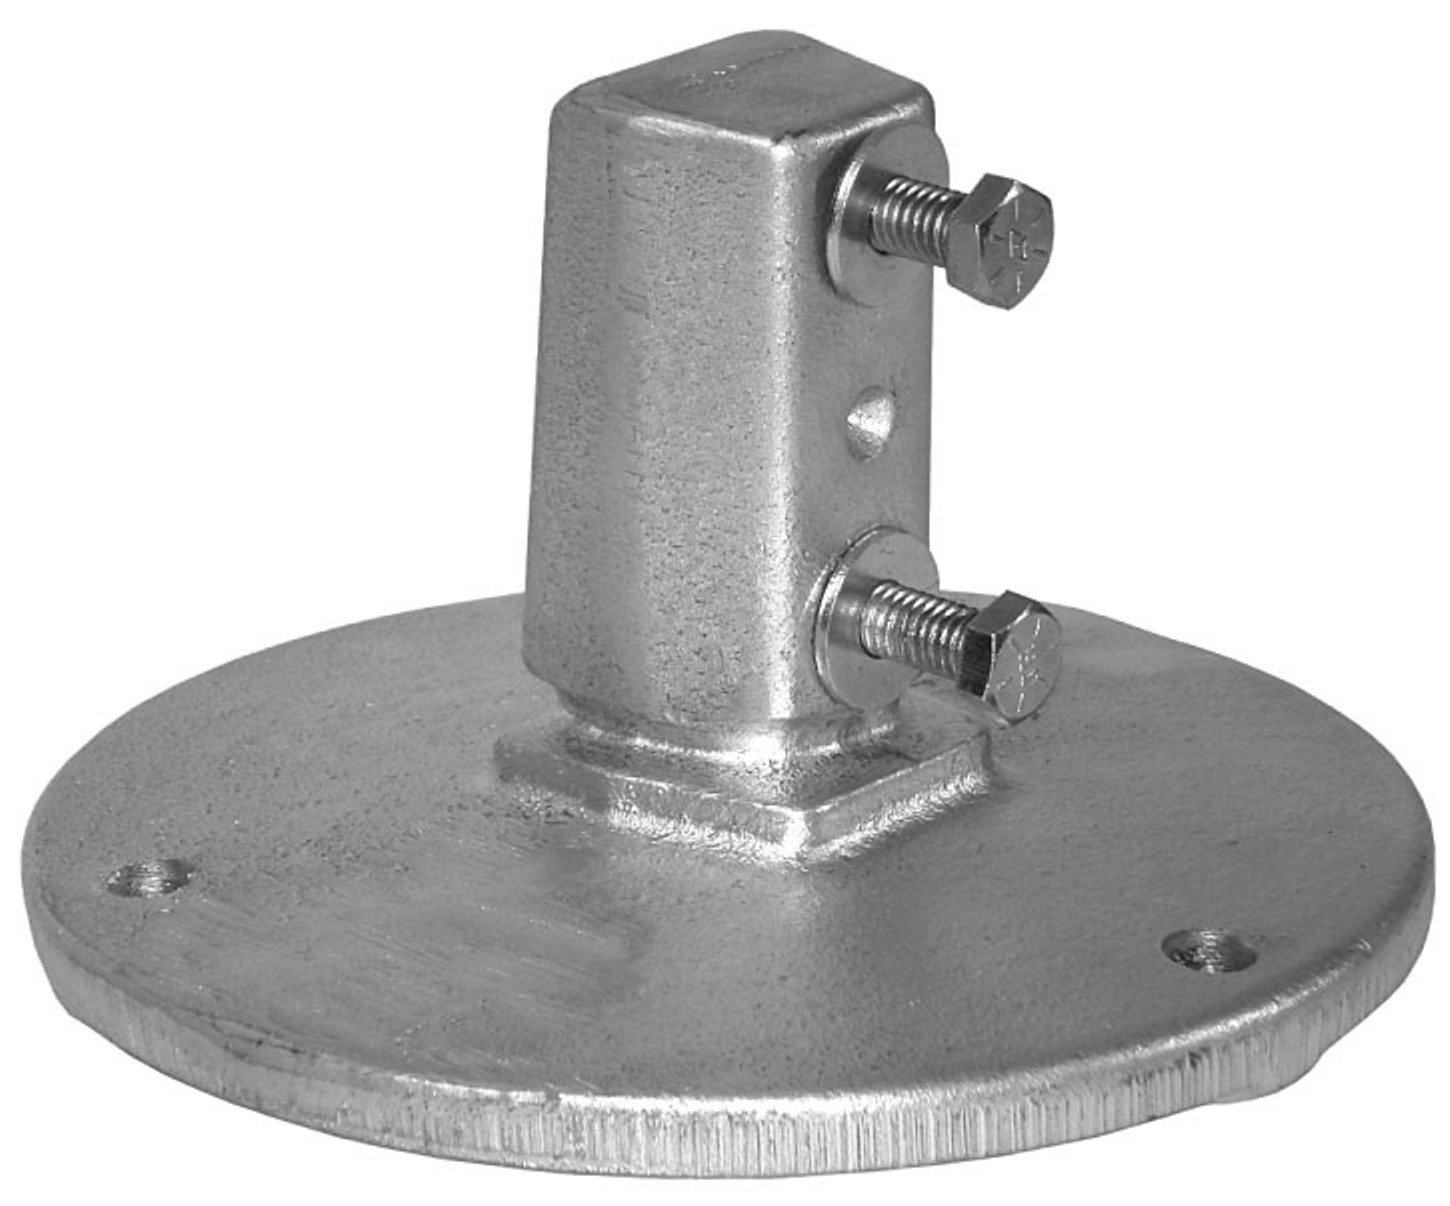 Designovations Inc. SU800S SNAP'n SAFE Surface Mount Breakaway U-Channel Sign Post Coupler for 2#, 3#, 4# Sign Post Size